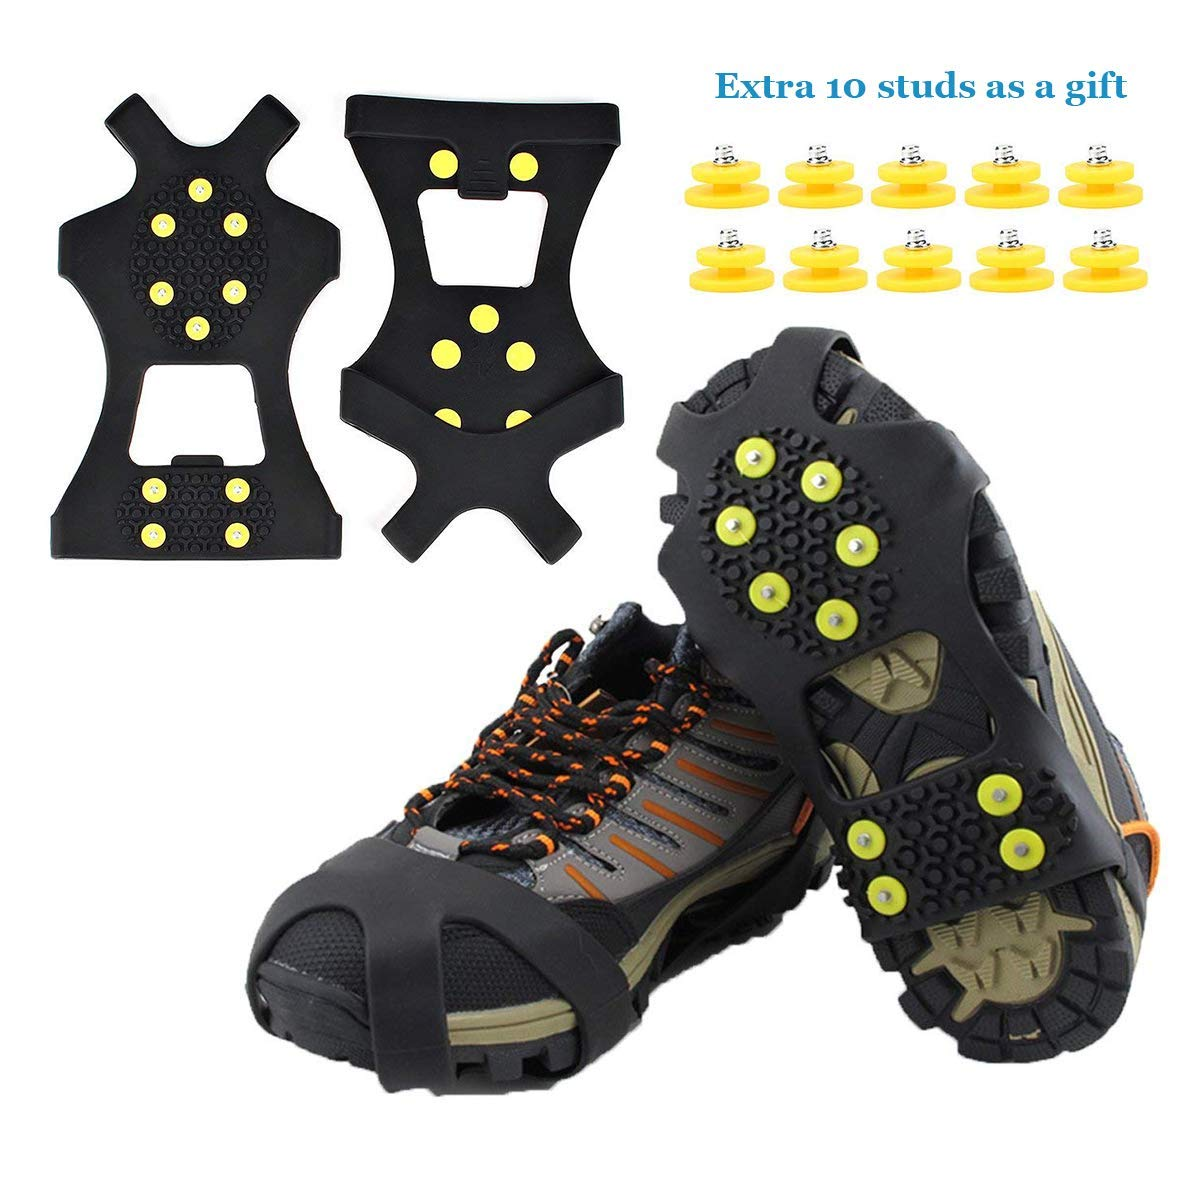 10PCS//Pack Anti Slip Snow Ice Grips Stud Crampon Spikes Durable Grips Grippers Crampon Cleats Replacement Accessories for Winter Outdoor Hiking